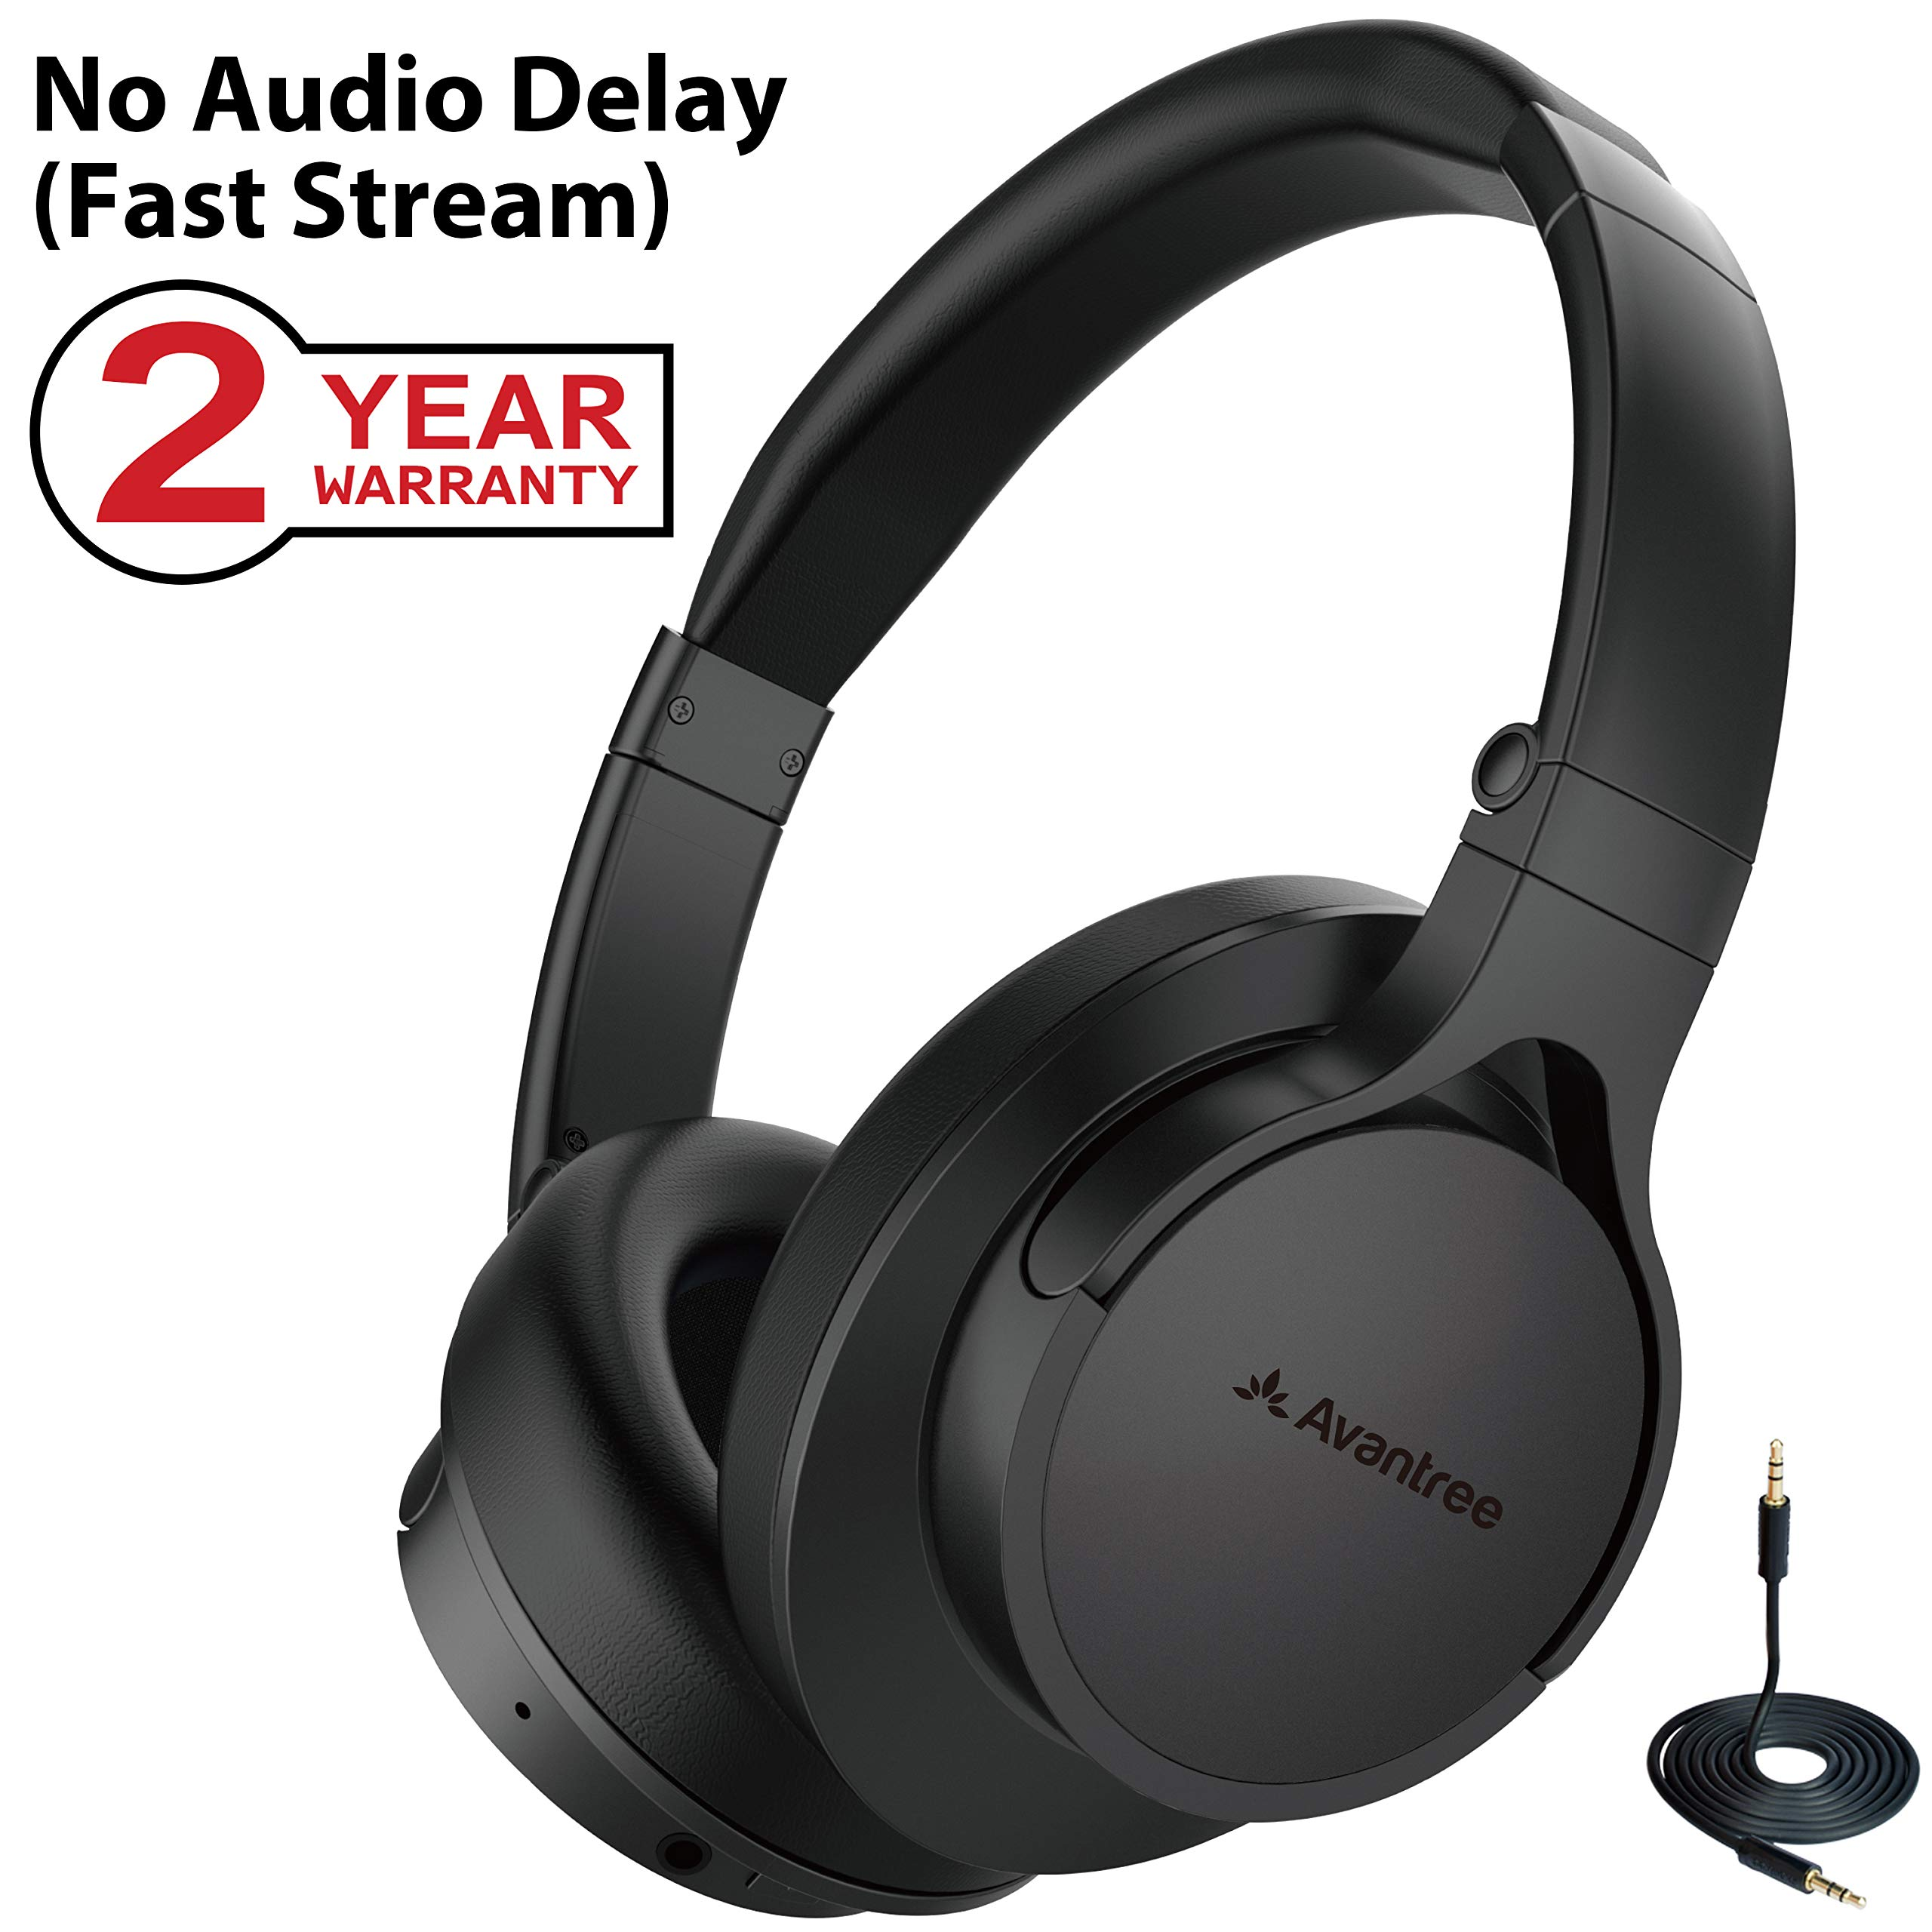 788c5645527 Avantree HS063 No Audio Delay Fast Stream Comfortable Bluetooth Headphones  Over Ear with Mic for TV